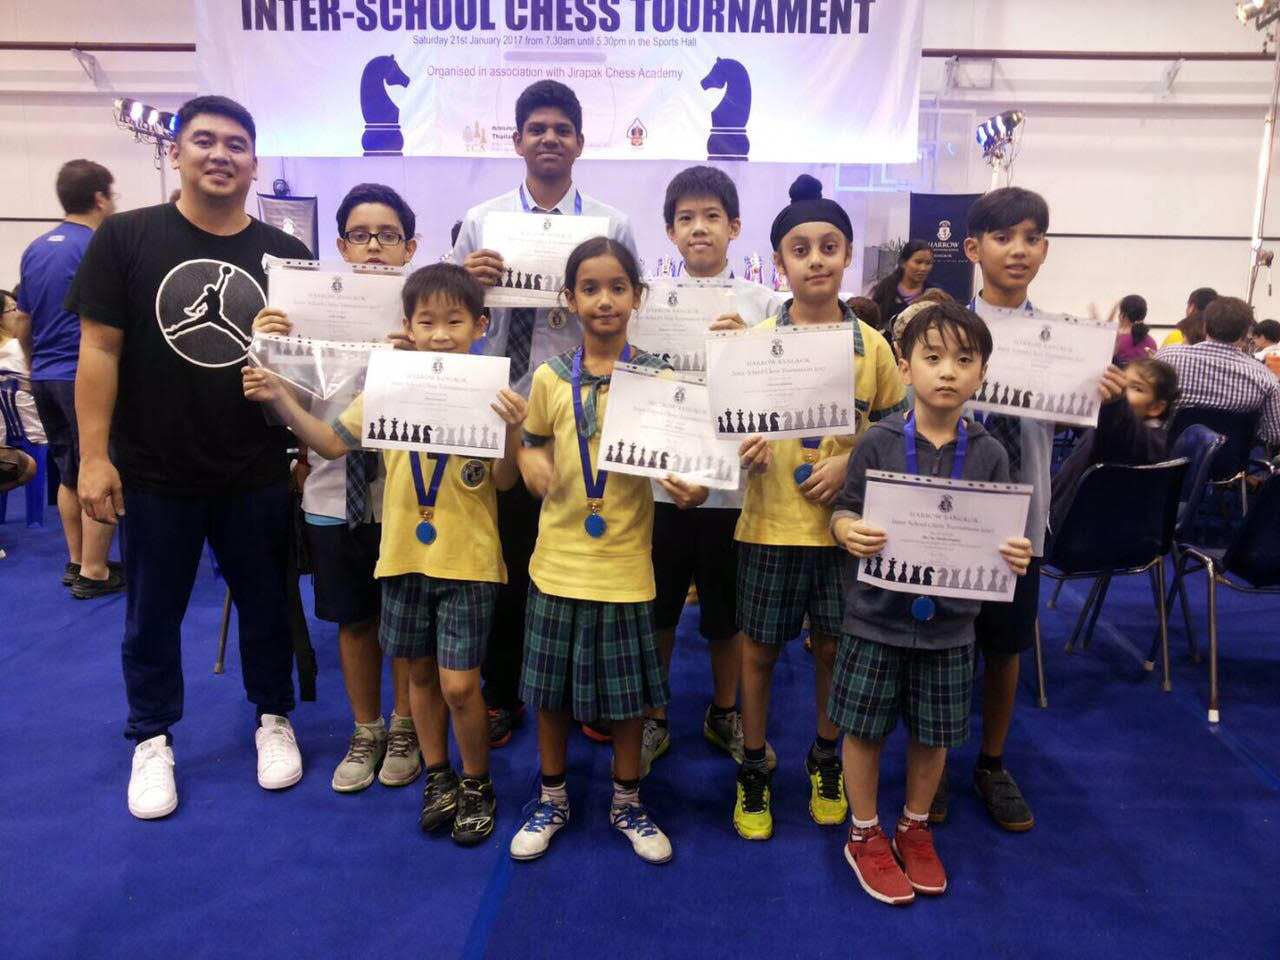 2017 - Inter-school Chess tournament group